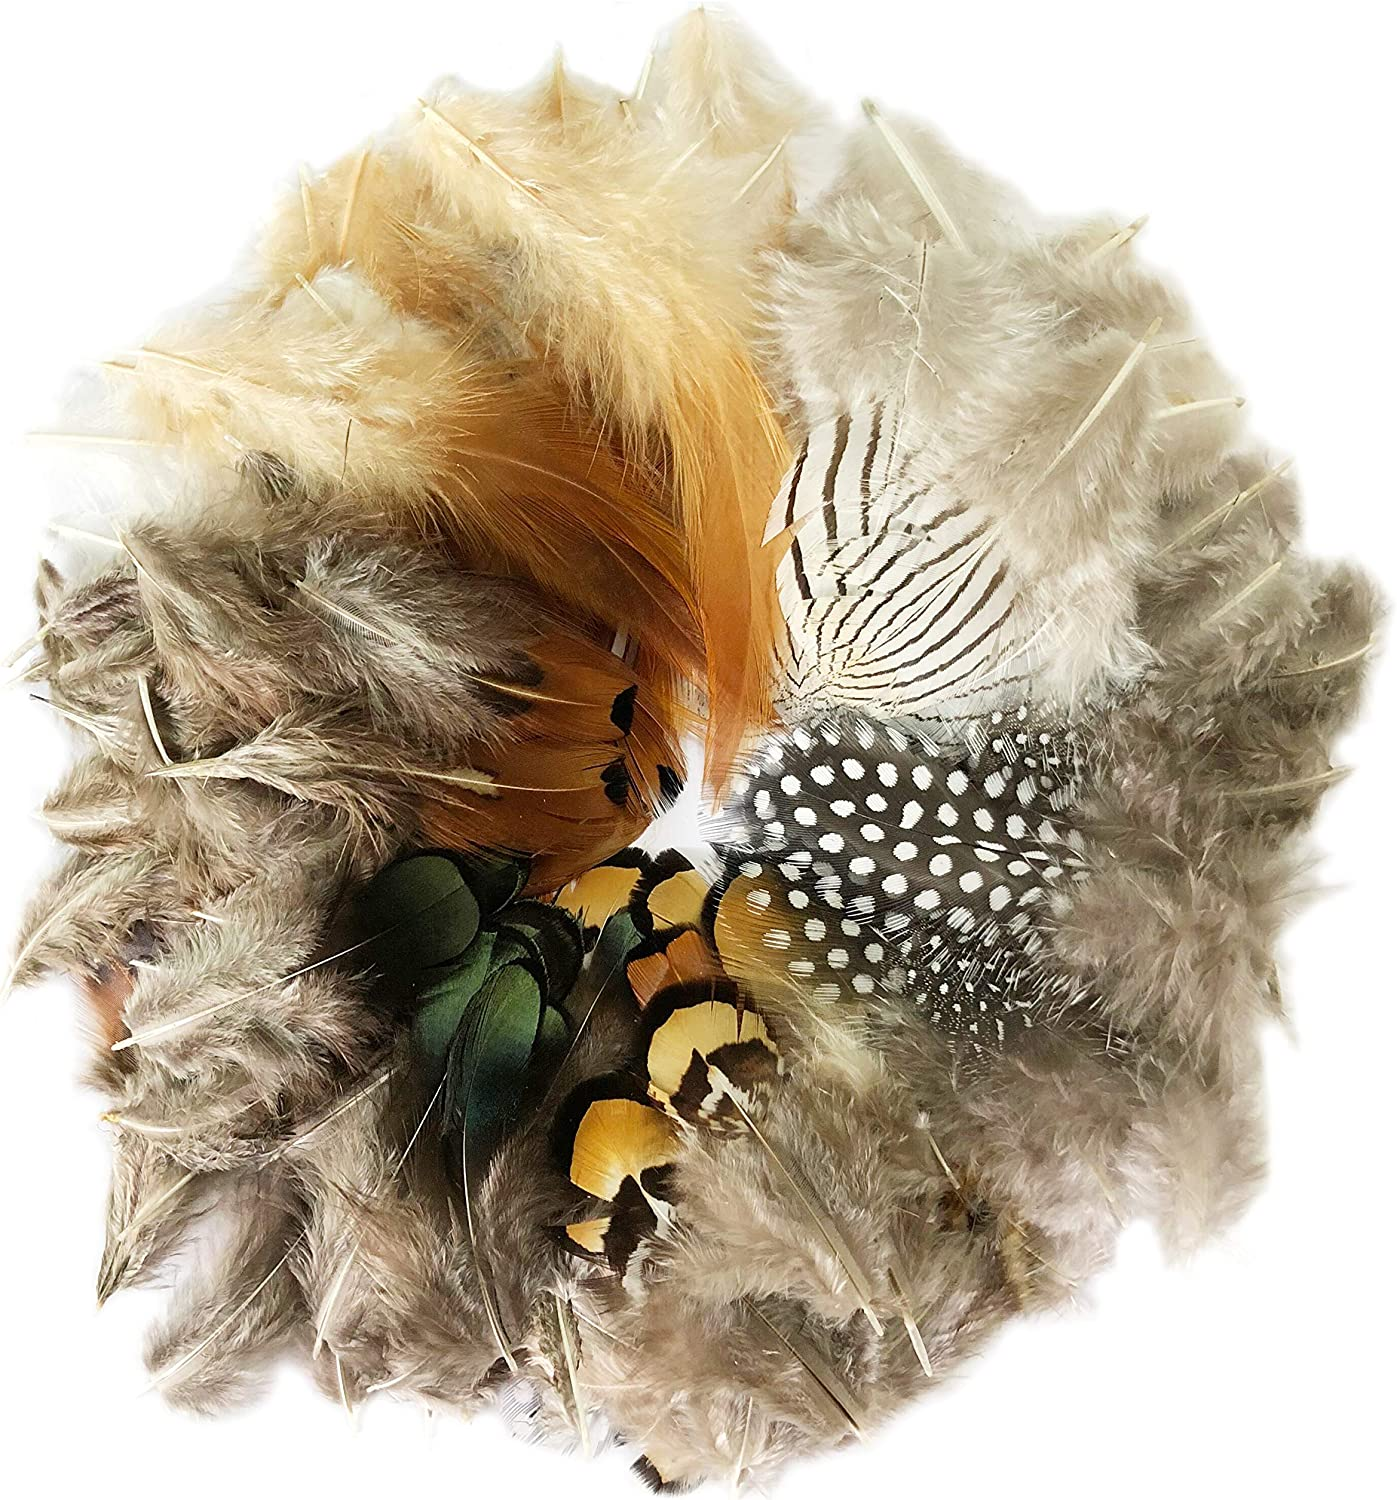 Benvo 120 Pcs 6 Styles of Feathers Assorted Nature Chicken Feathers for Arts and Crafts Projects Dream Catcher Decoration Party Dress-ups Hanging Garlands